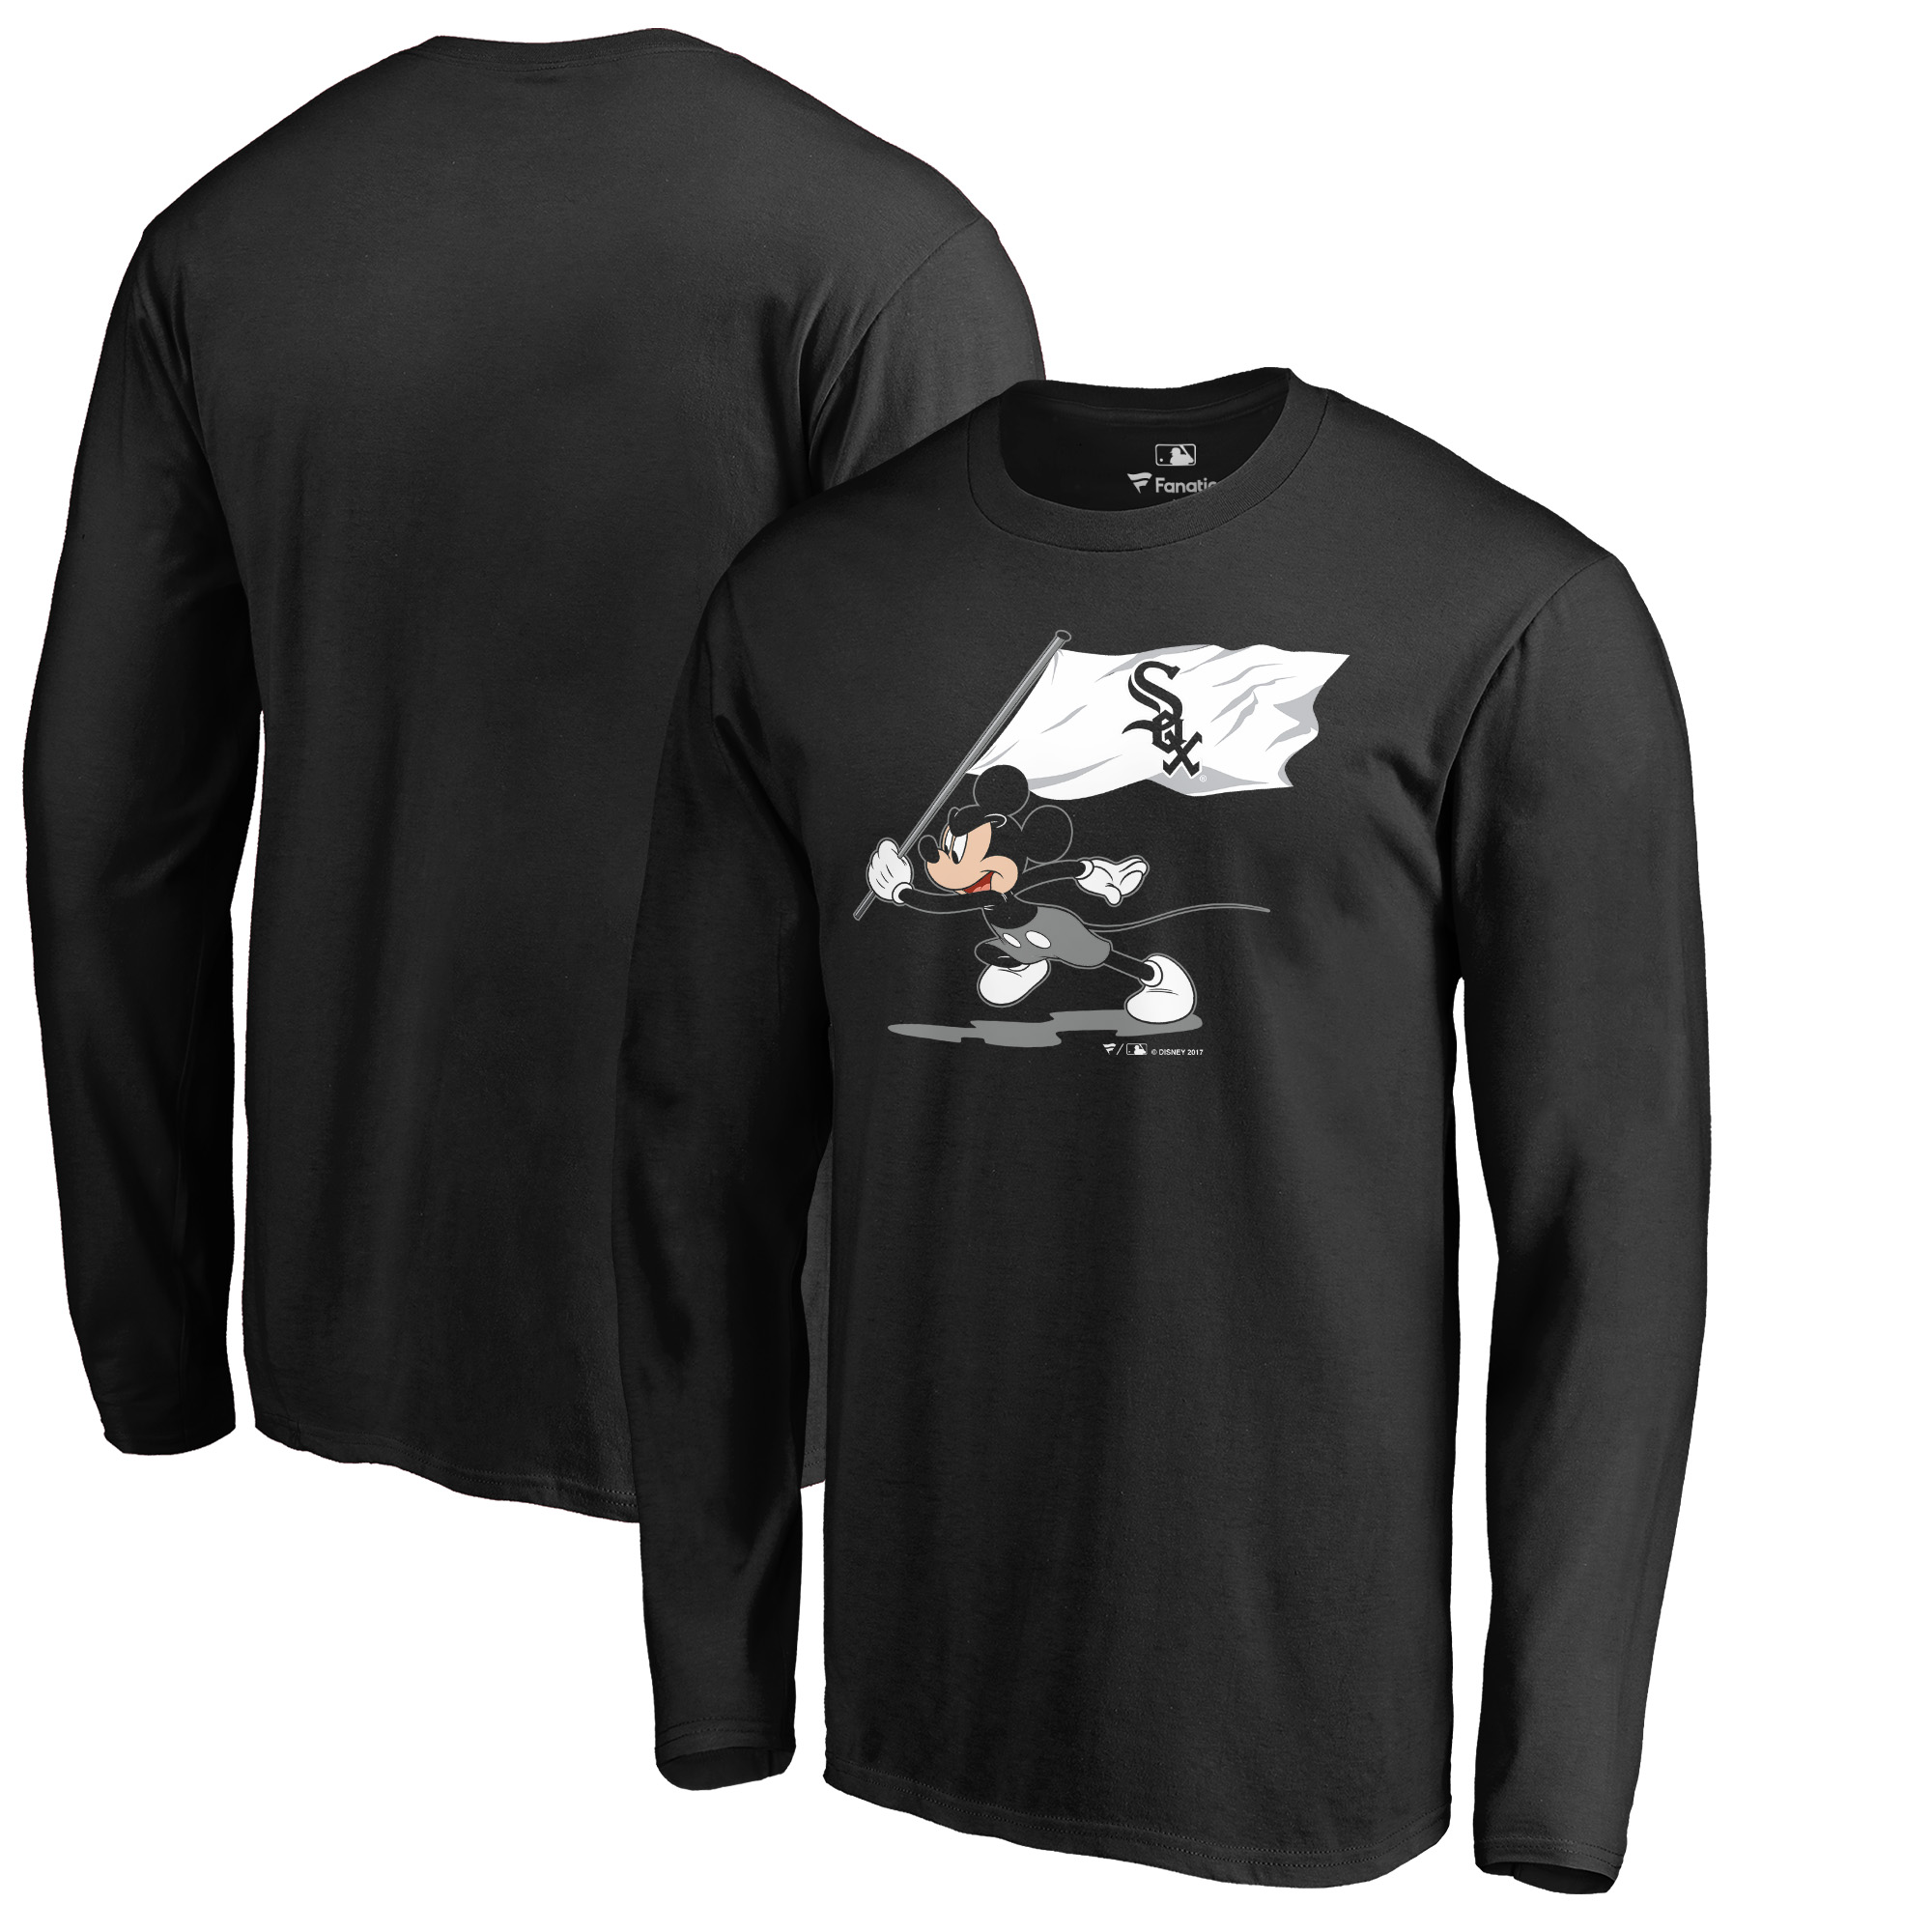 Chicago White Sox Fanatics Branded Disney Fly Your Flag Long Sleeve T-Shirt - Black